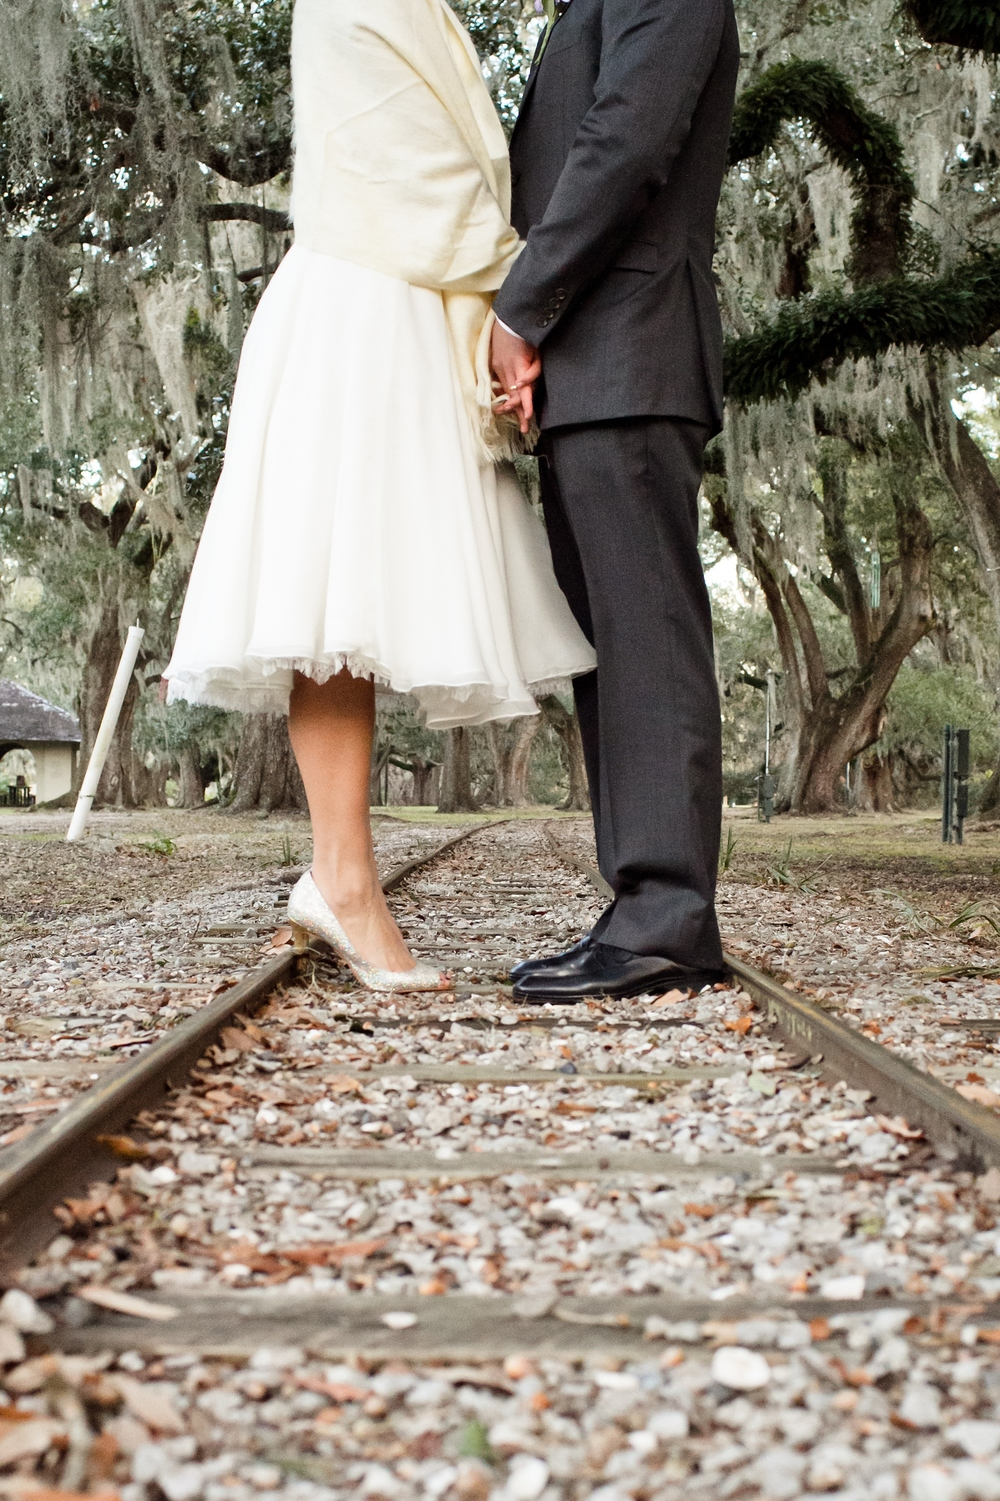 new_orleans_wedding_photographer_0032.jpg